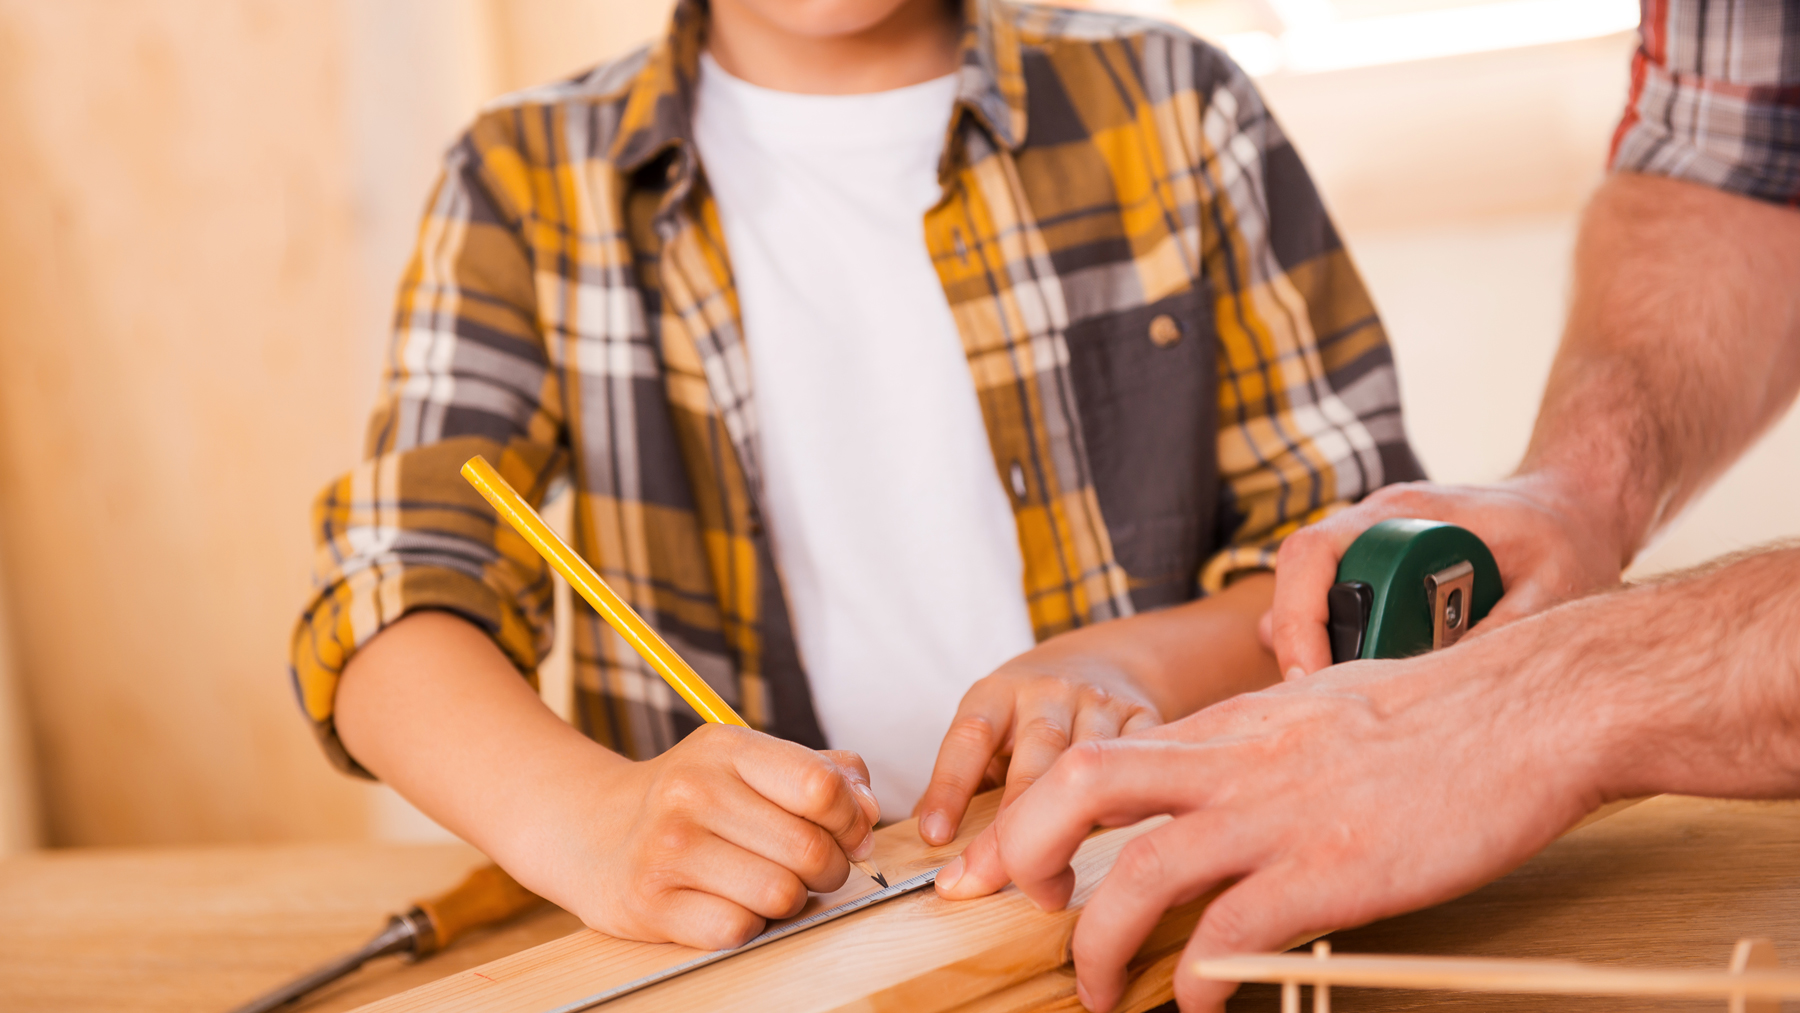 Hands-on learning helps students take what they learn and apply it in real-world applications